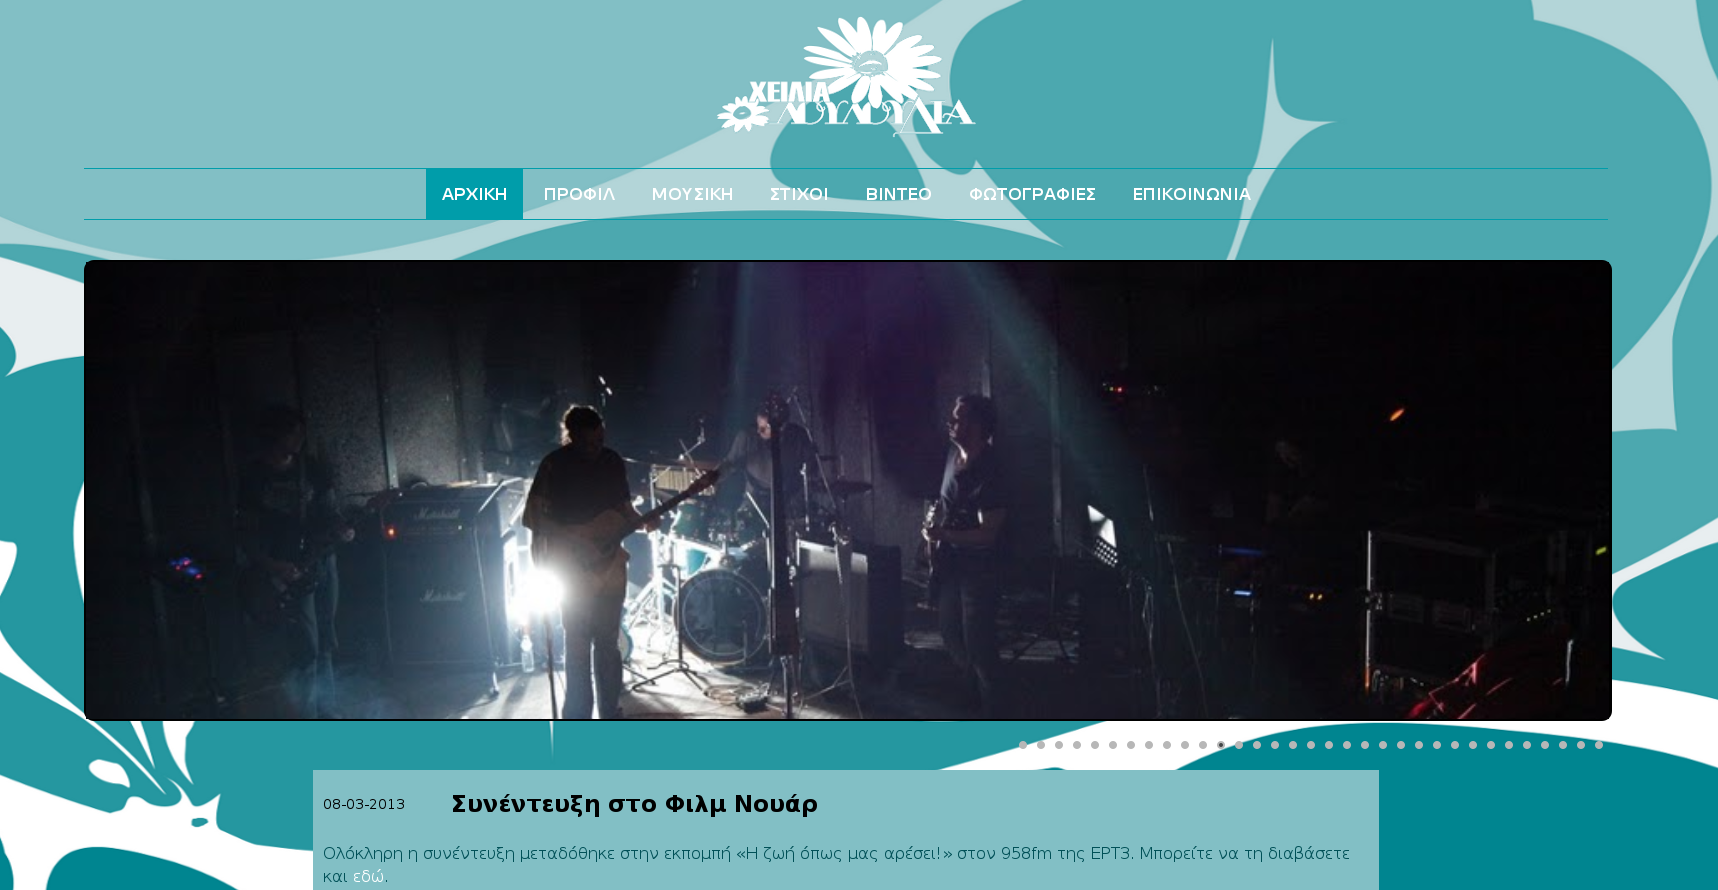 xeilialouloudia music band web page